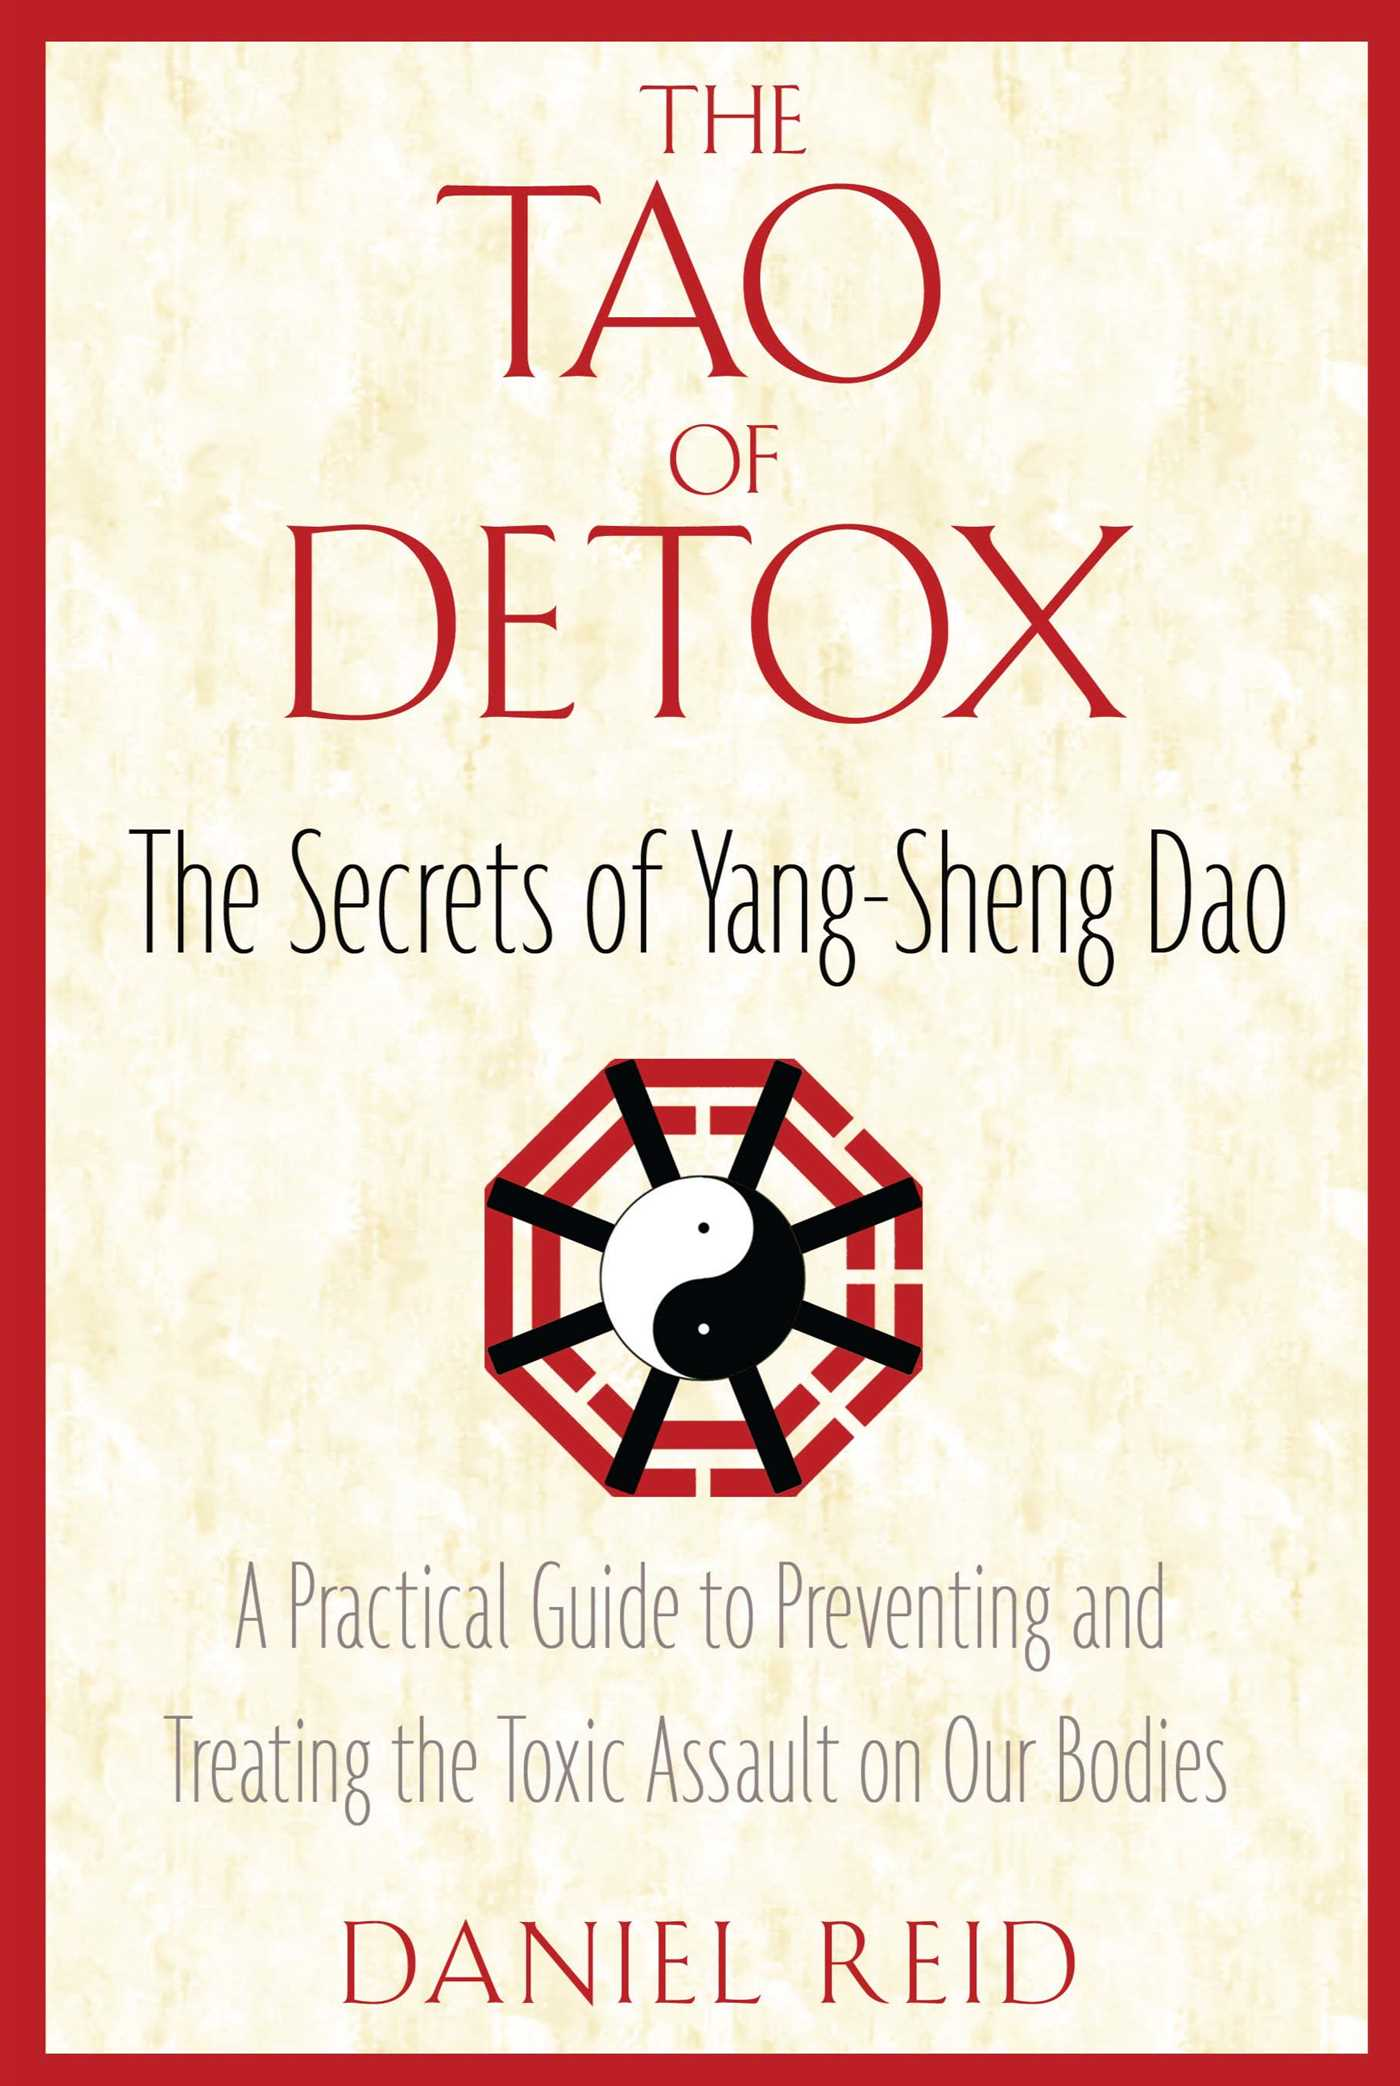 Tao-of-detox-9781594771422_hr